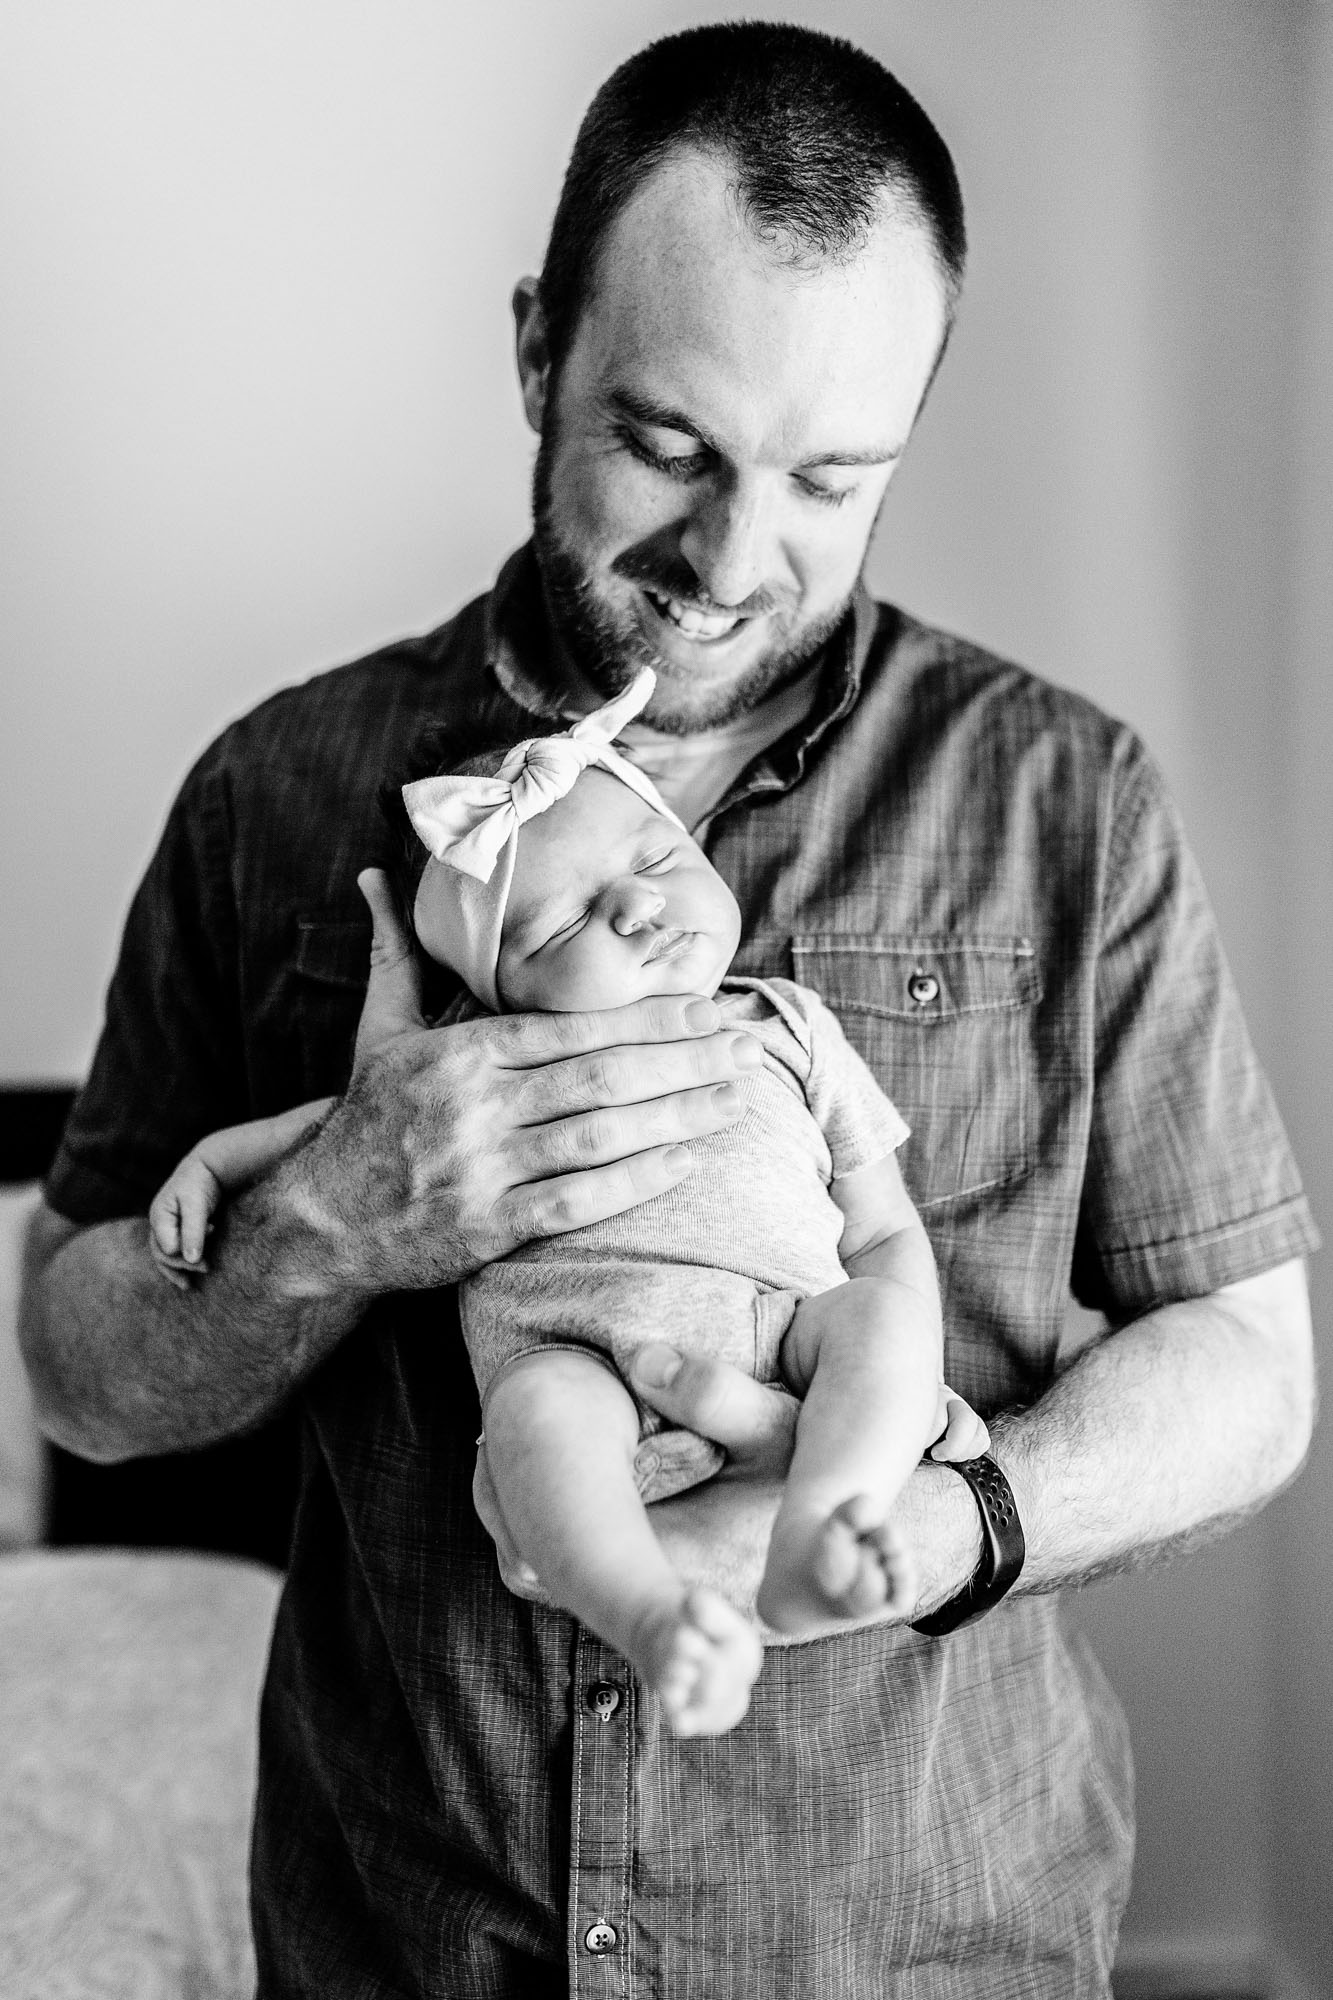 A father proudly holds his baby during an in-home newborn photo session with photographer Amy Wright, who is based out of Sacramento, Roseville, and Rocklin, California.